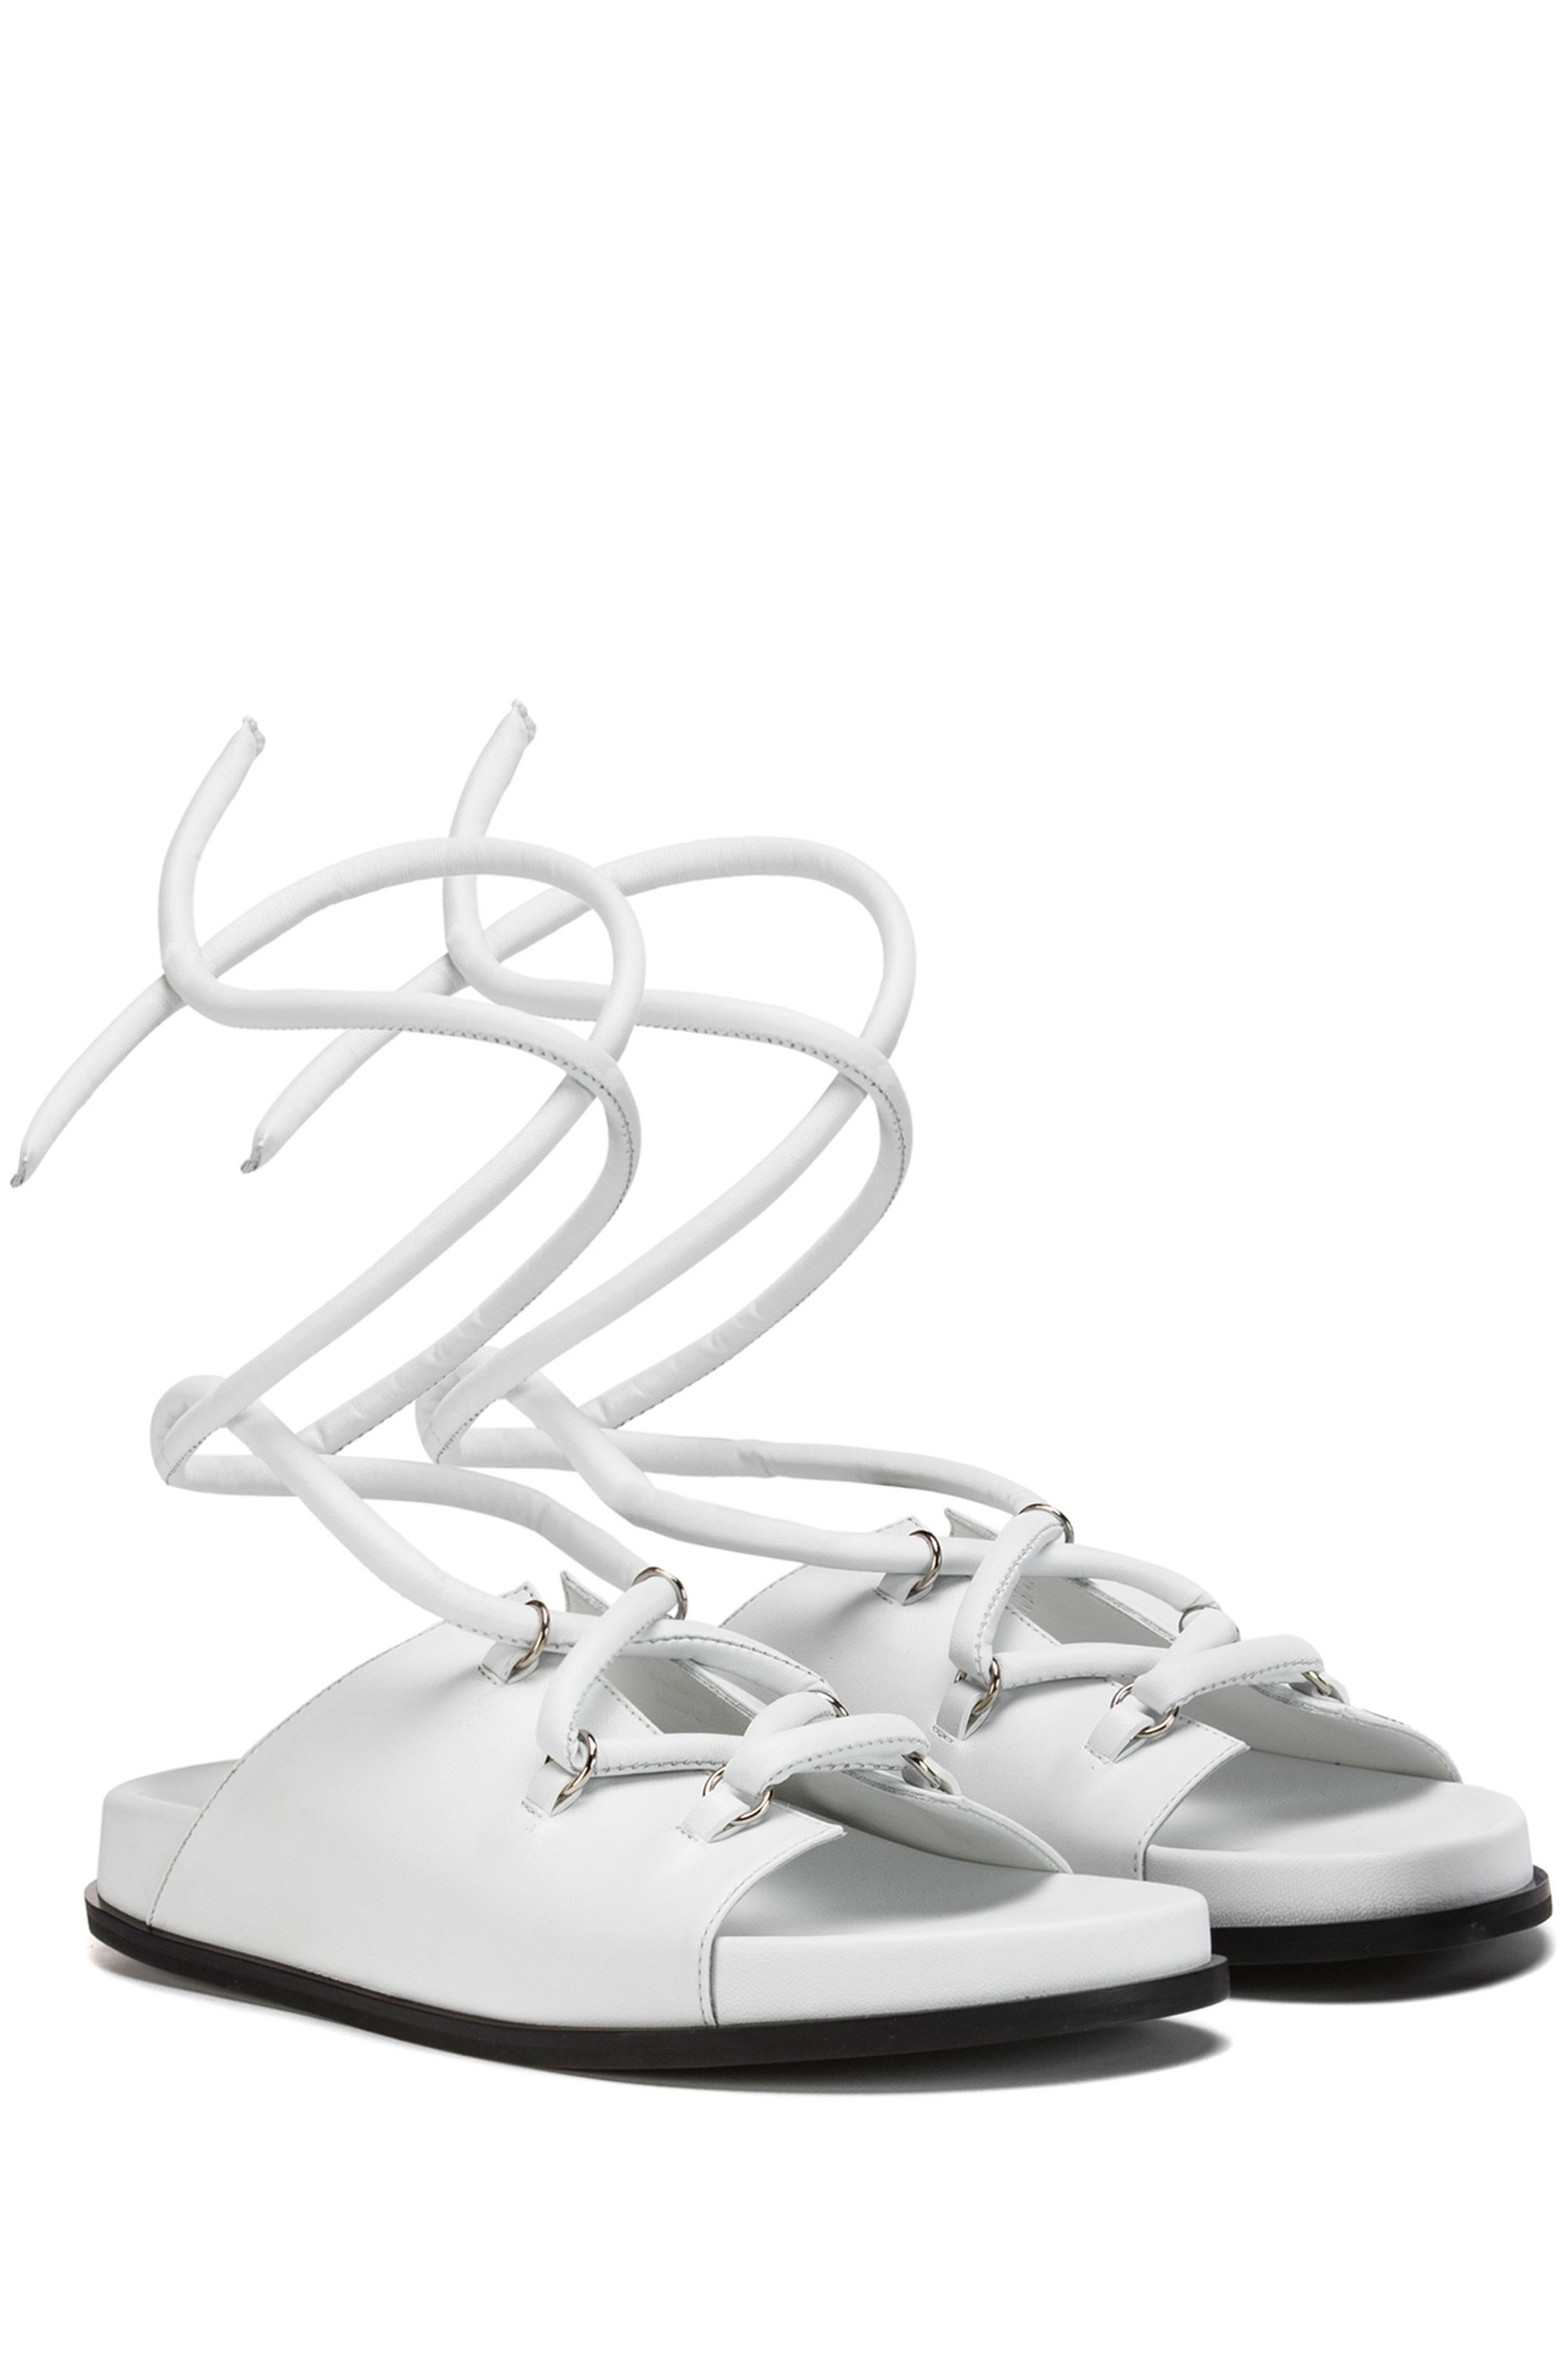 Nappa-leather sandals with ankle ties